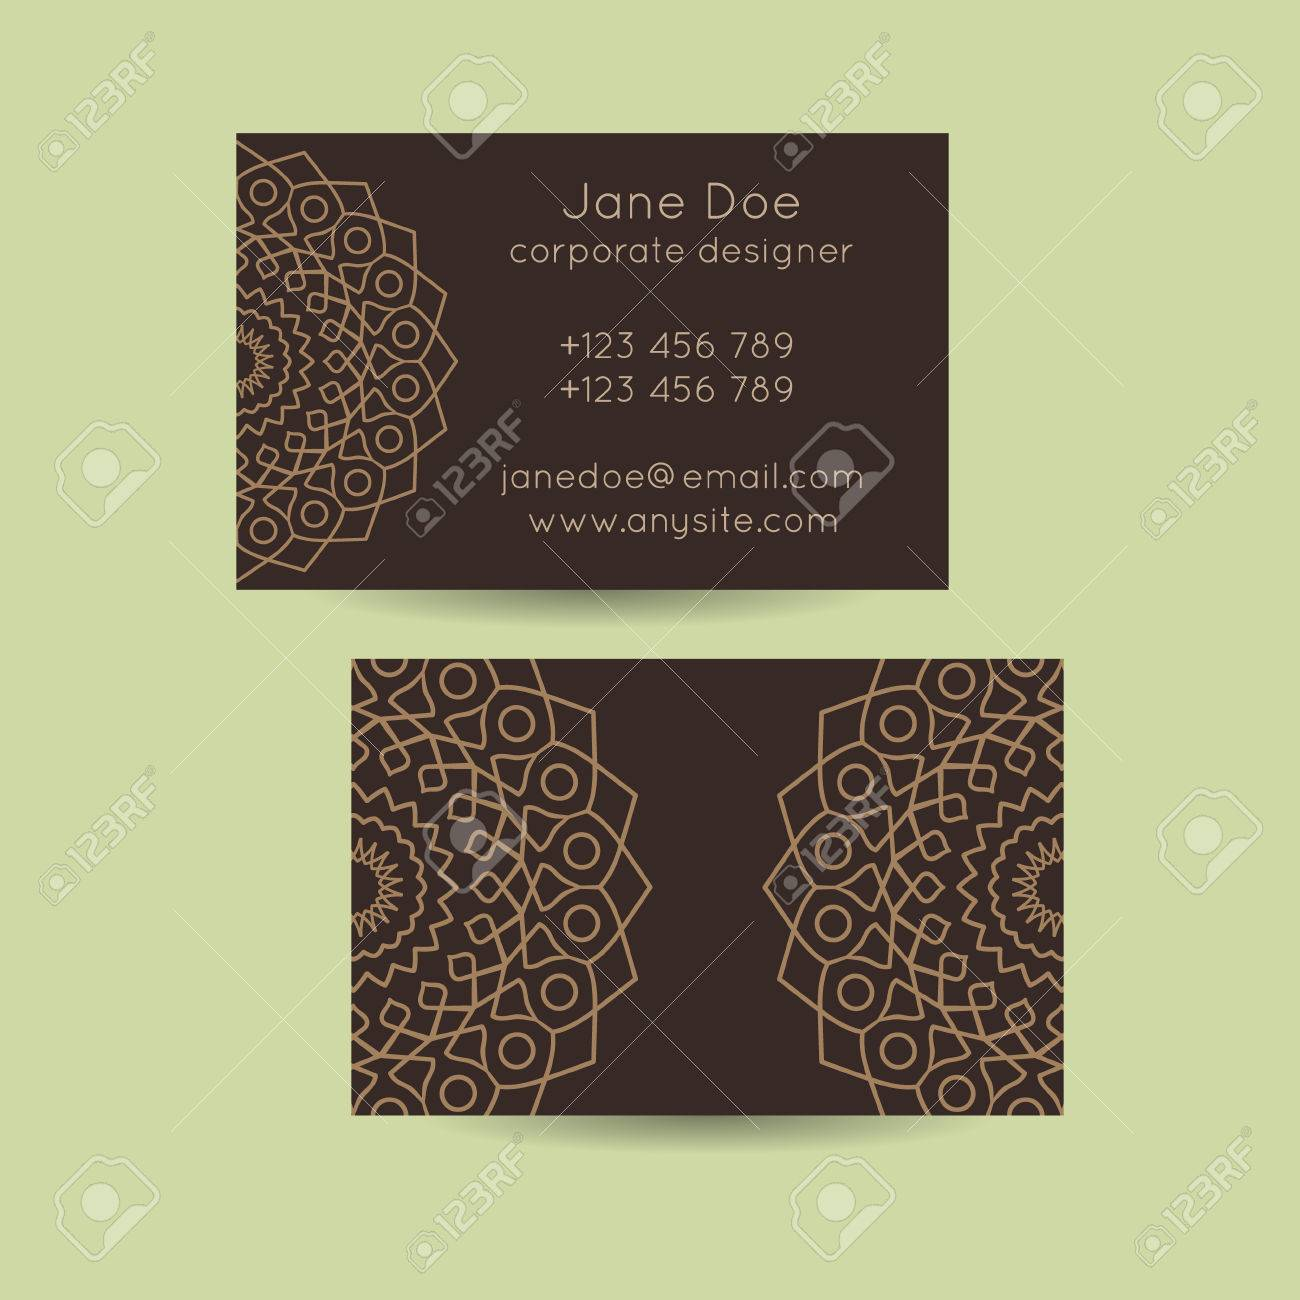 Set Of Vintage Mandala Business Card Template Designs. Mandala ...